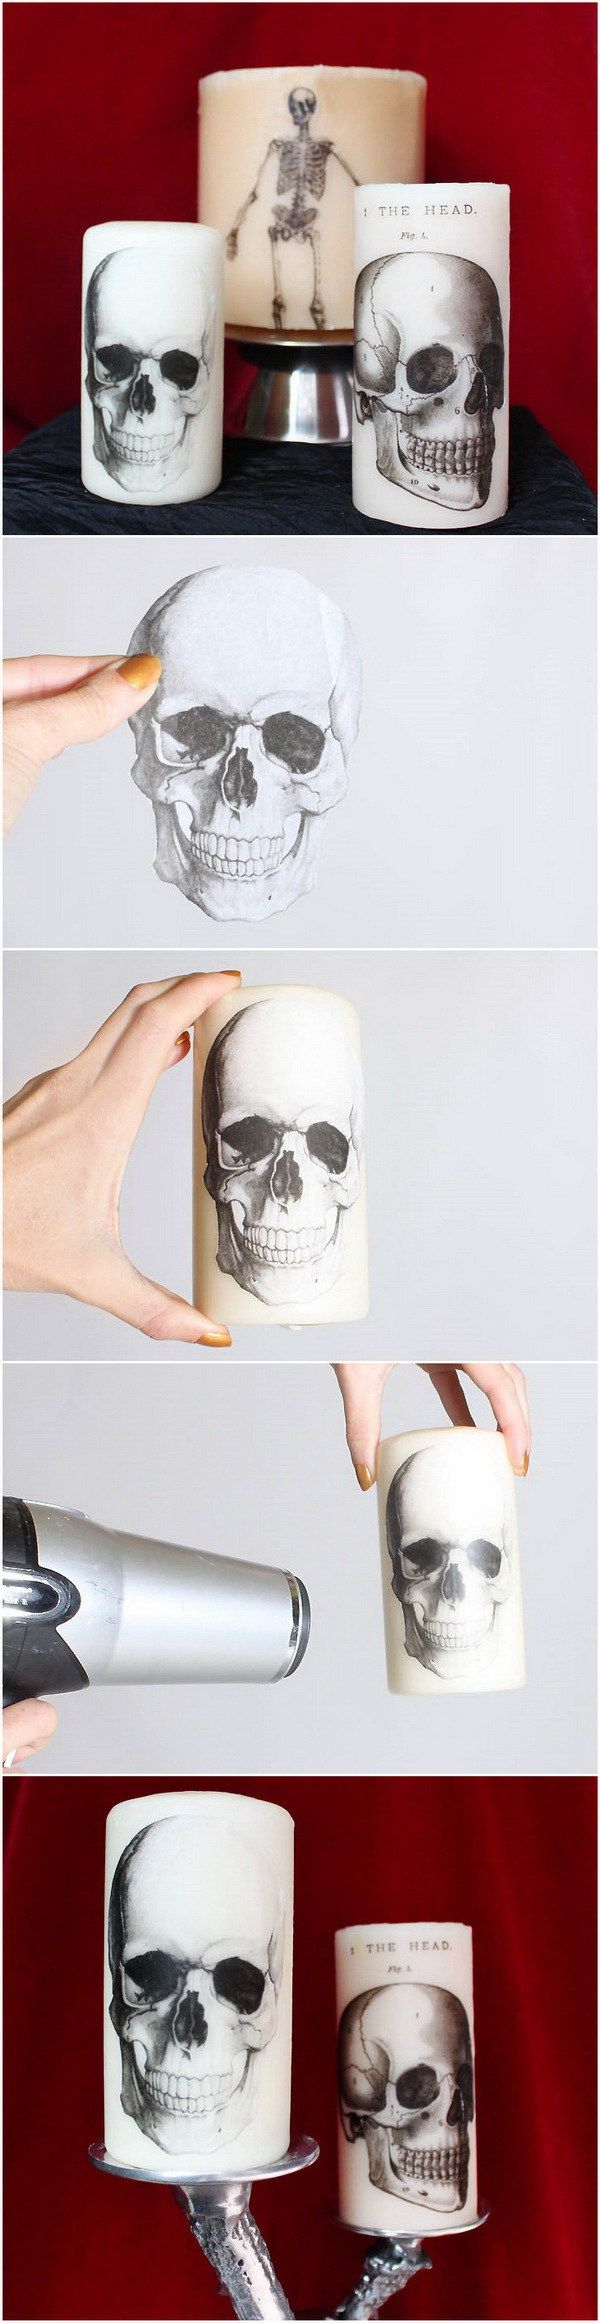 48 best Halloween images on Pinterest Halloween stuff, Halloween - Diy Indoor Halloween Decorations